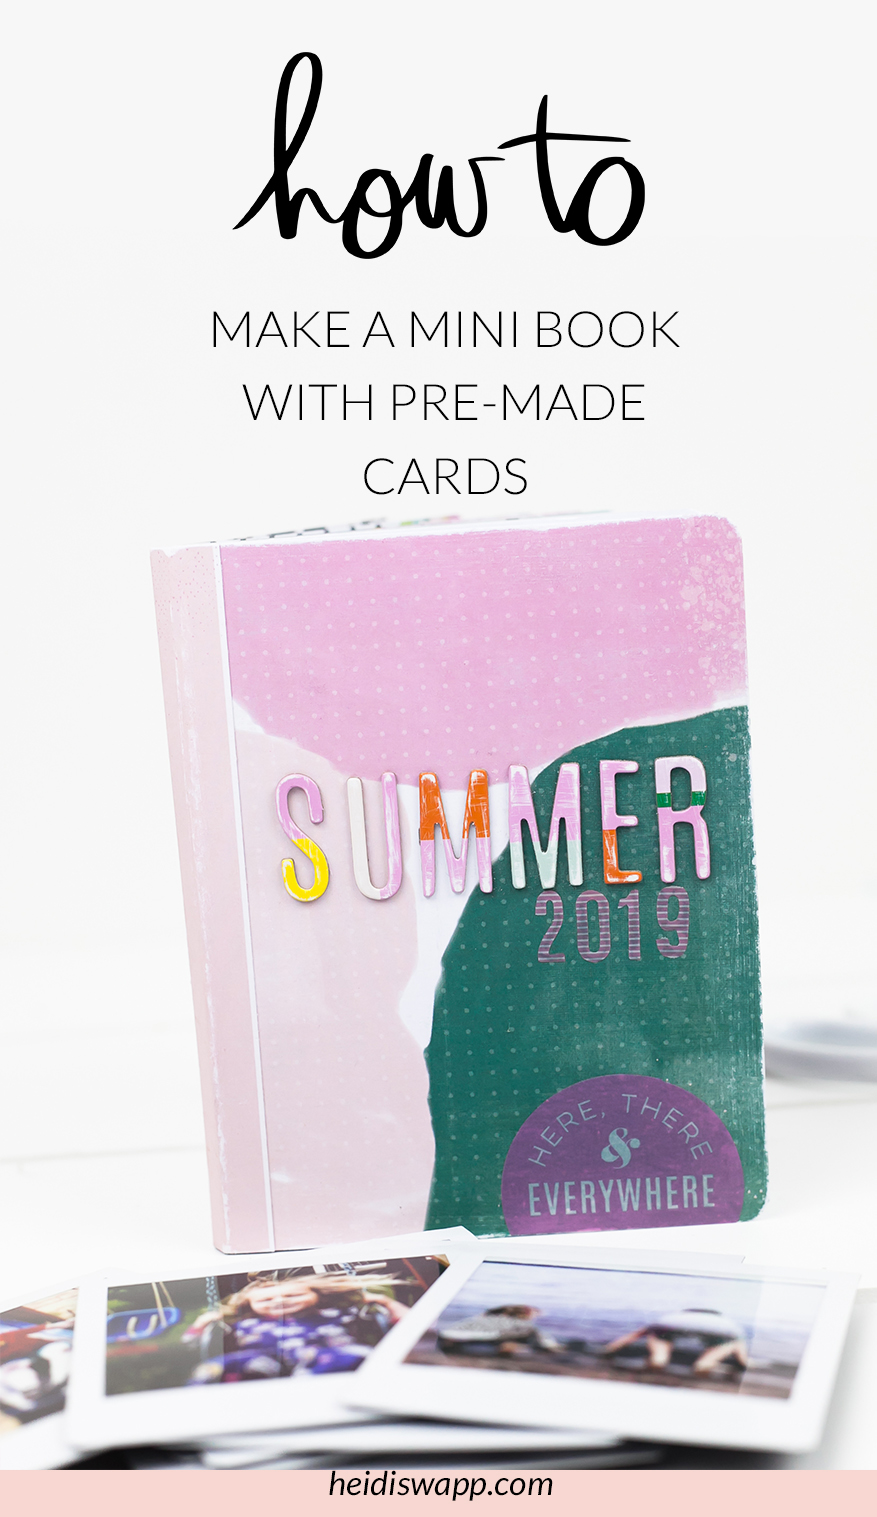 You won't believe how easy it is to create this Heidi Swapp DIY Mini Album simply with printed cards! Media Team Member, Lindsay Bateman, will walk you through step by step to assemble this book. Add your instax or other printed photos to the book to make a one of a kind scrapbooking keepsake.